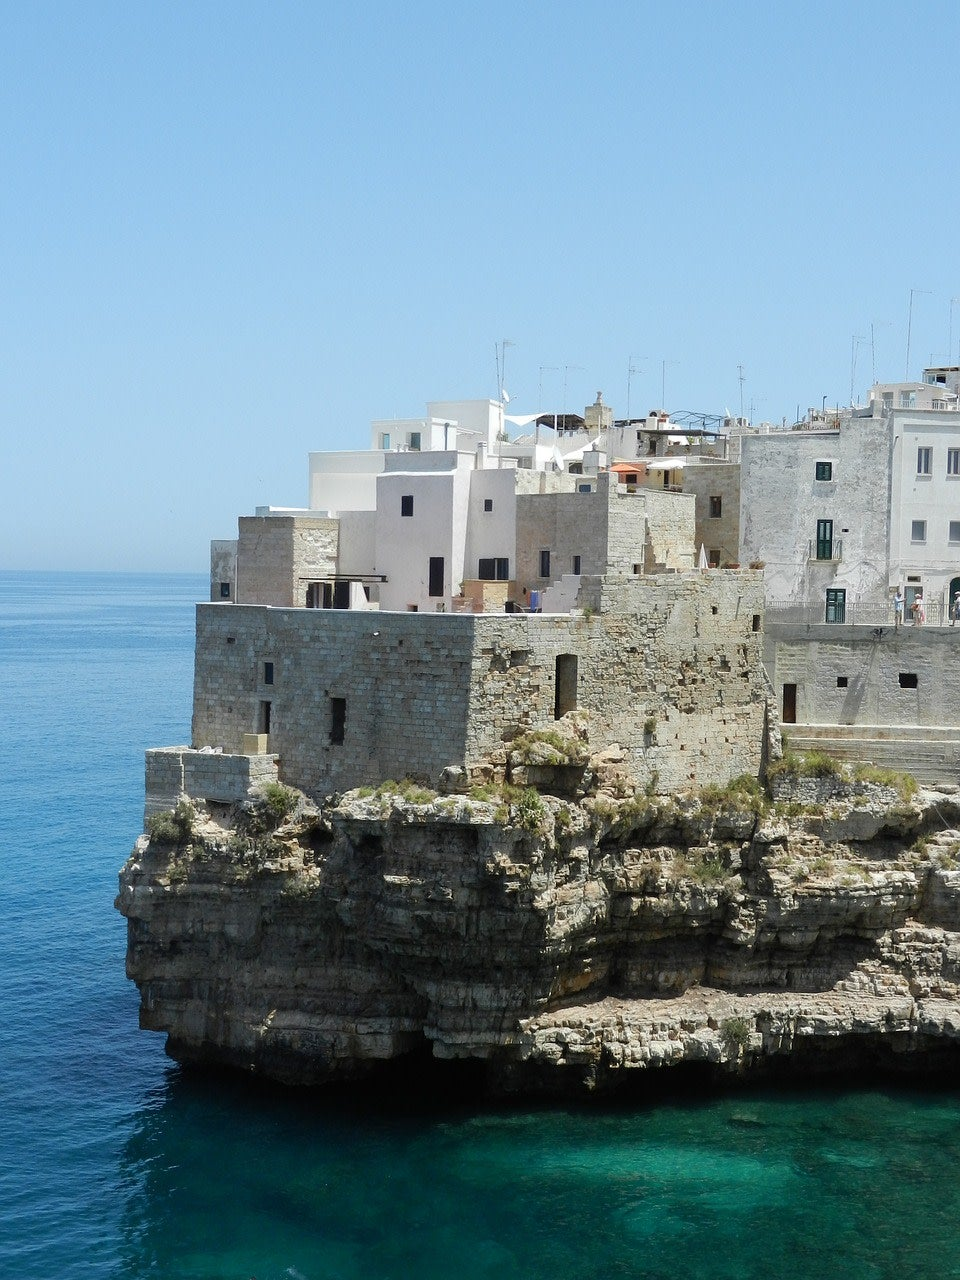 Monopoli, Italy Might Be the Next Big Summer Destination